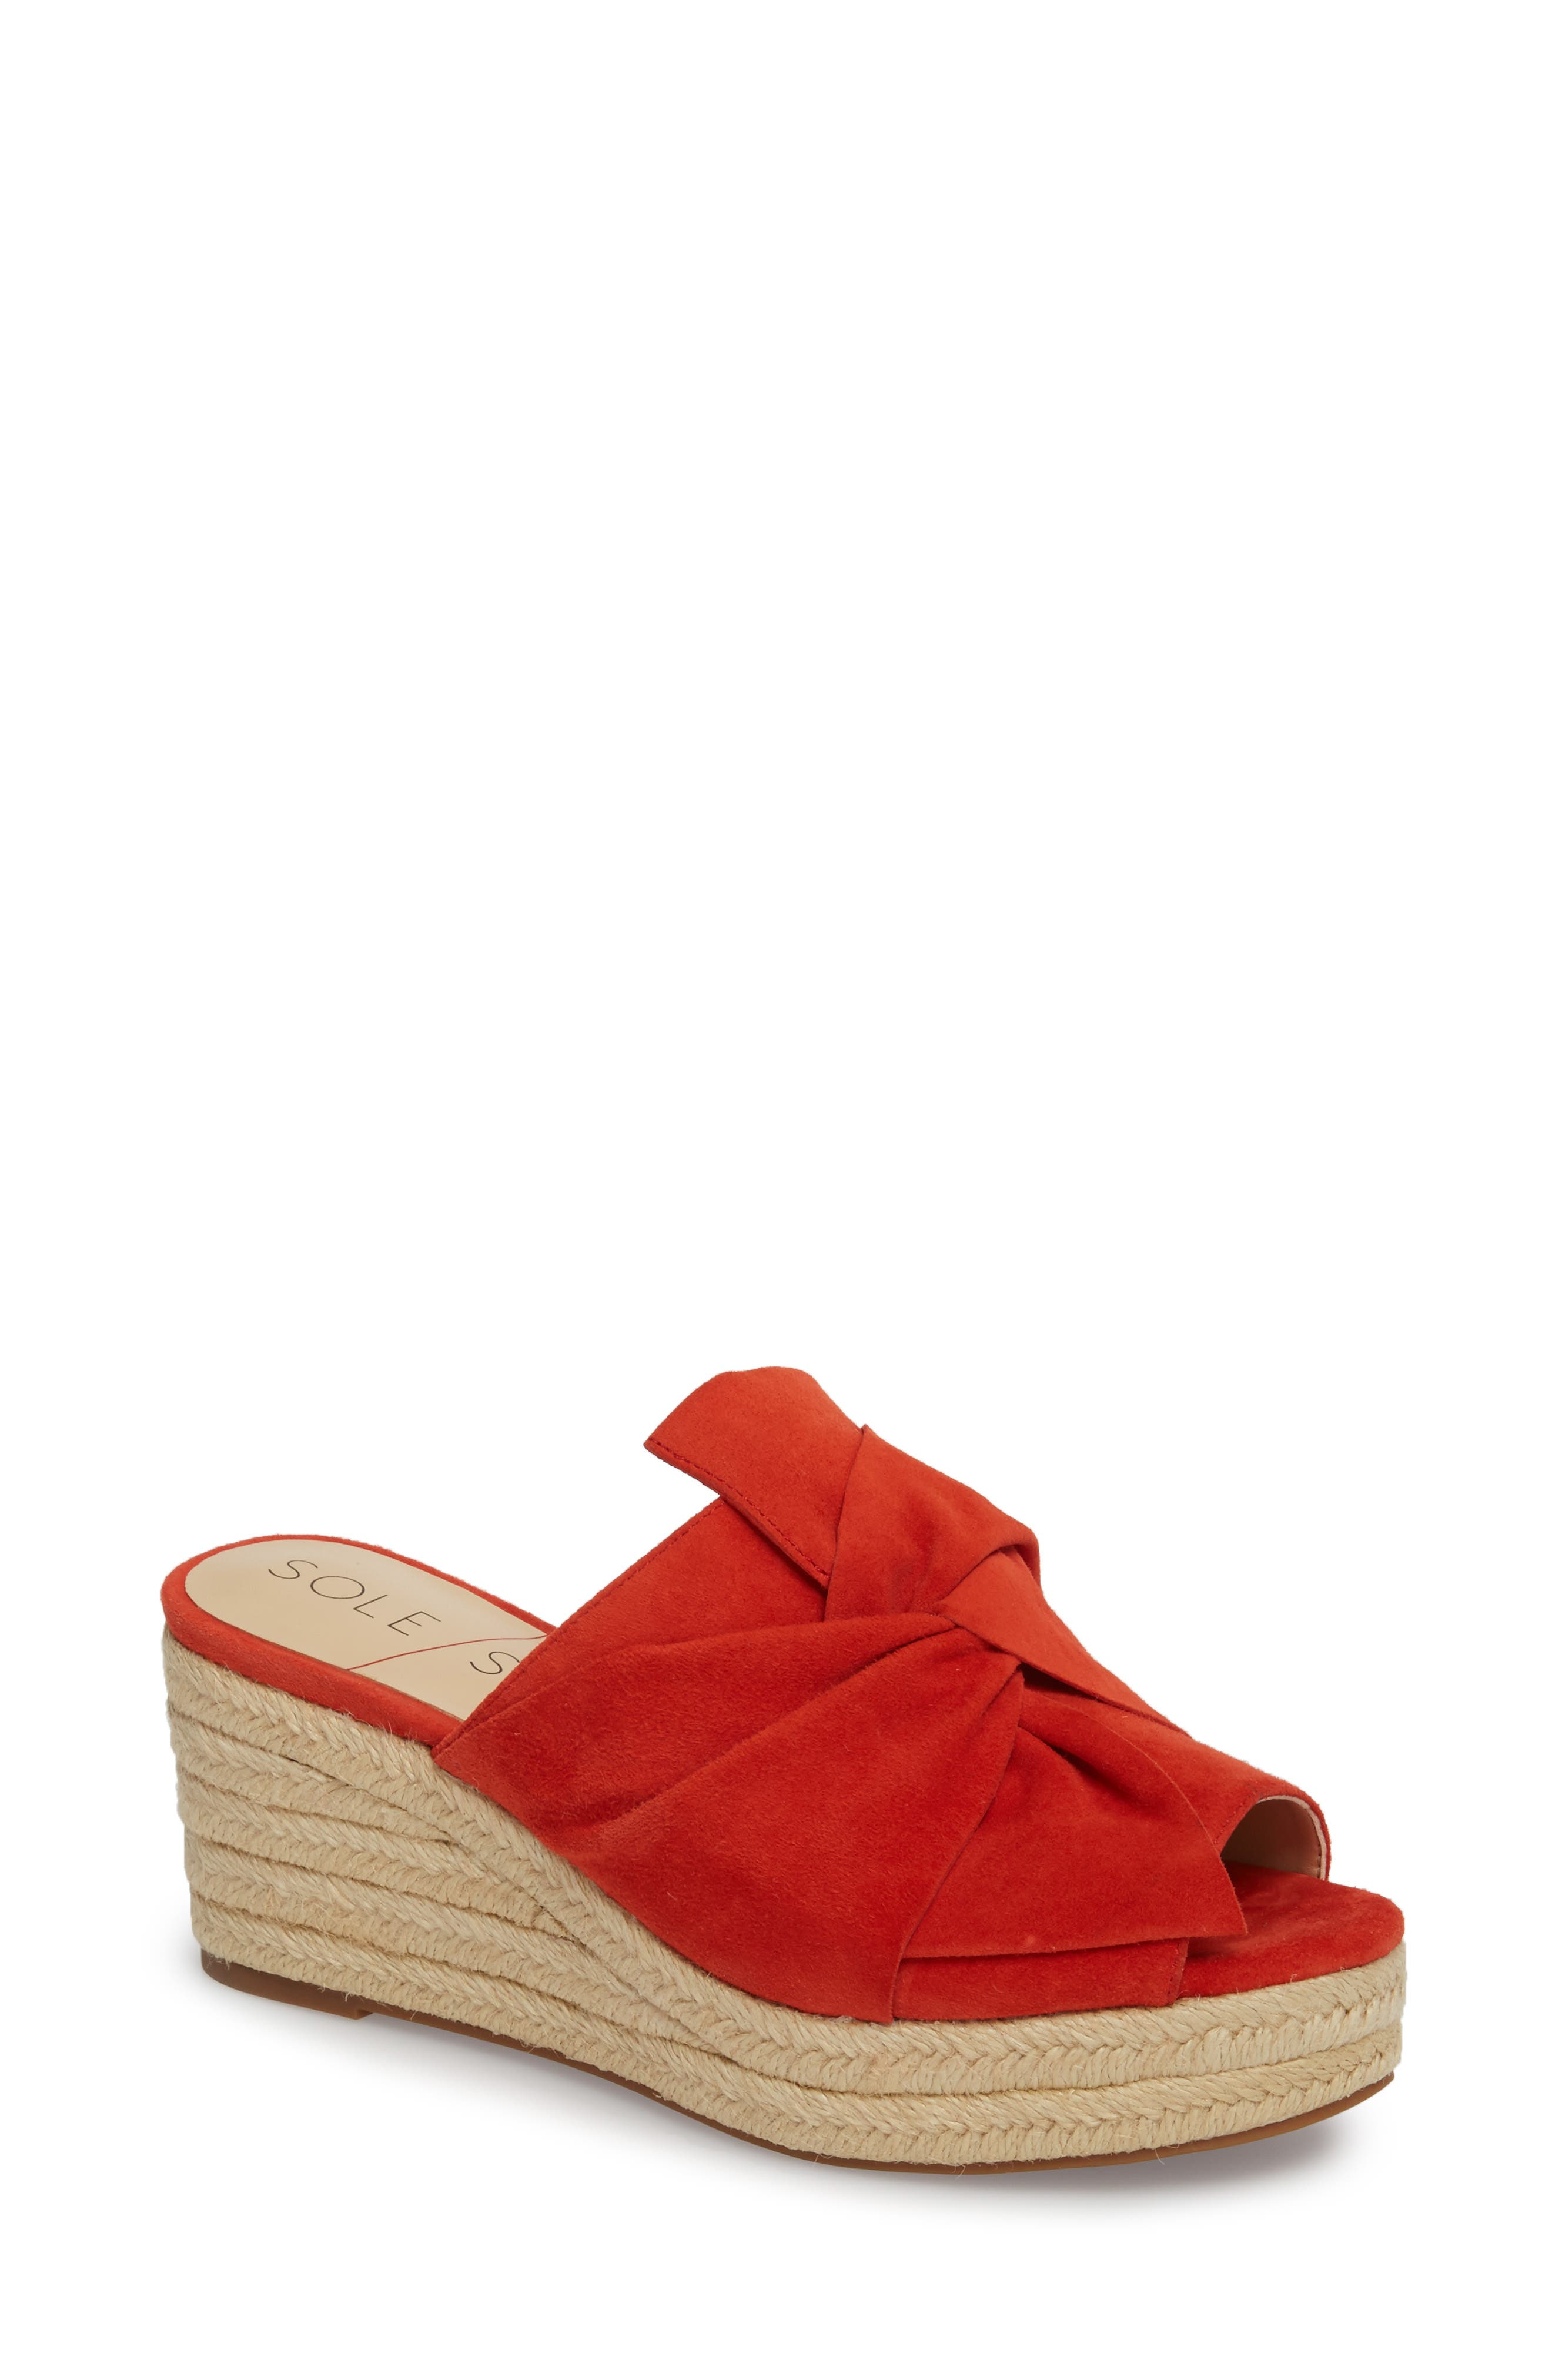 Carima Espadrille Wedge,                             Main thumbnail 1, color,                             Bright Coral Suede